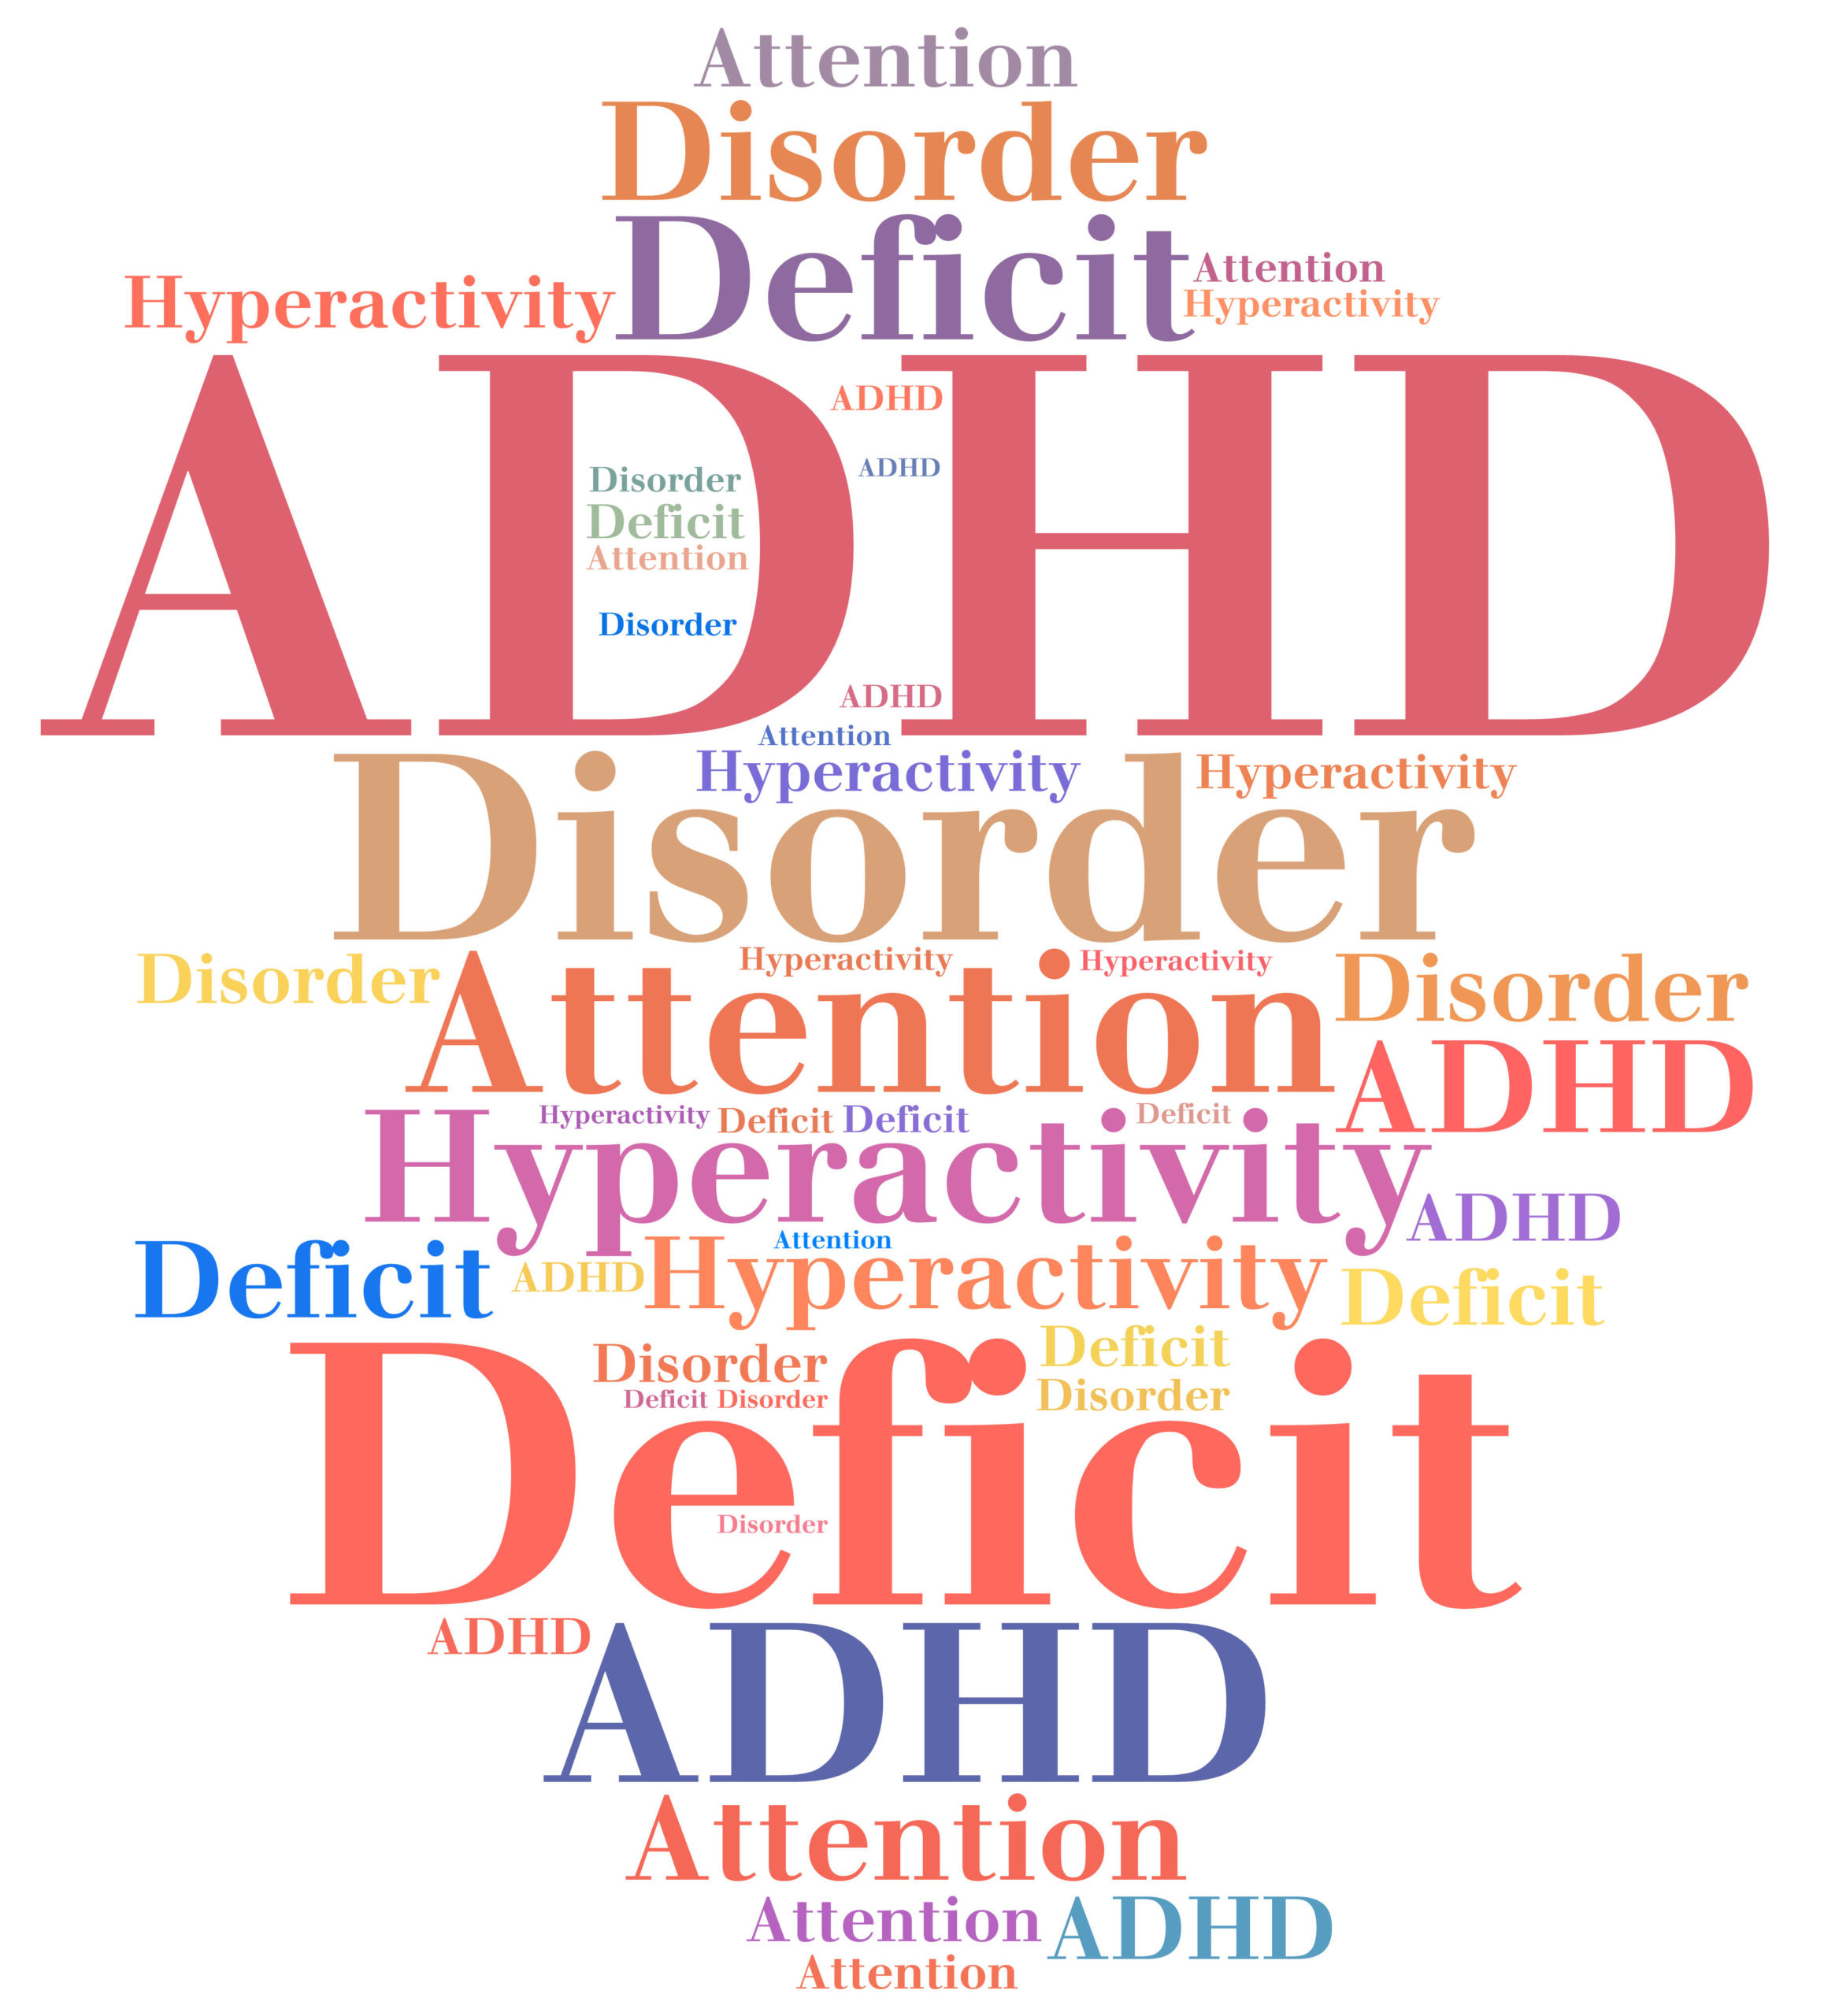 ADHD - Attention deficit hyperactivity disorder. Disease abbreviation.